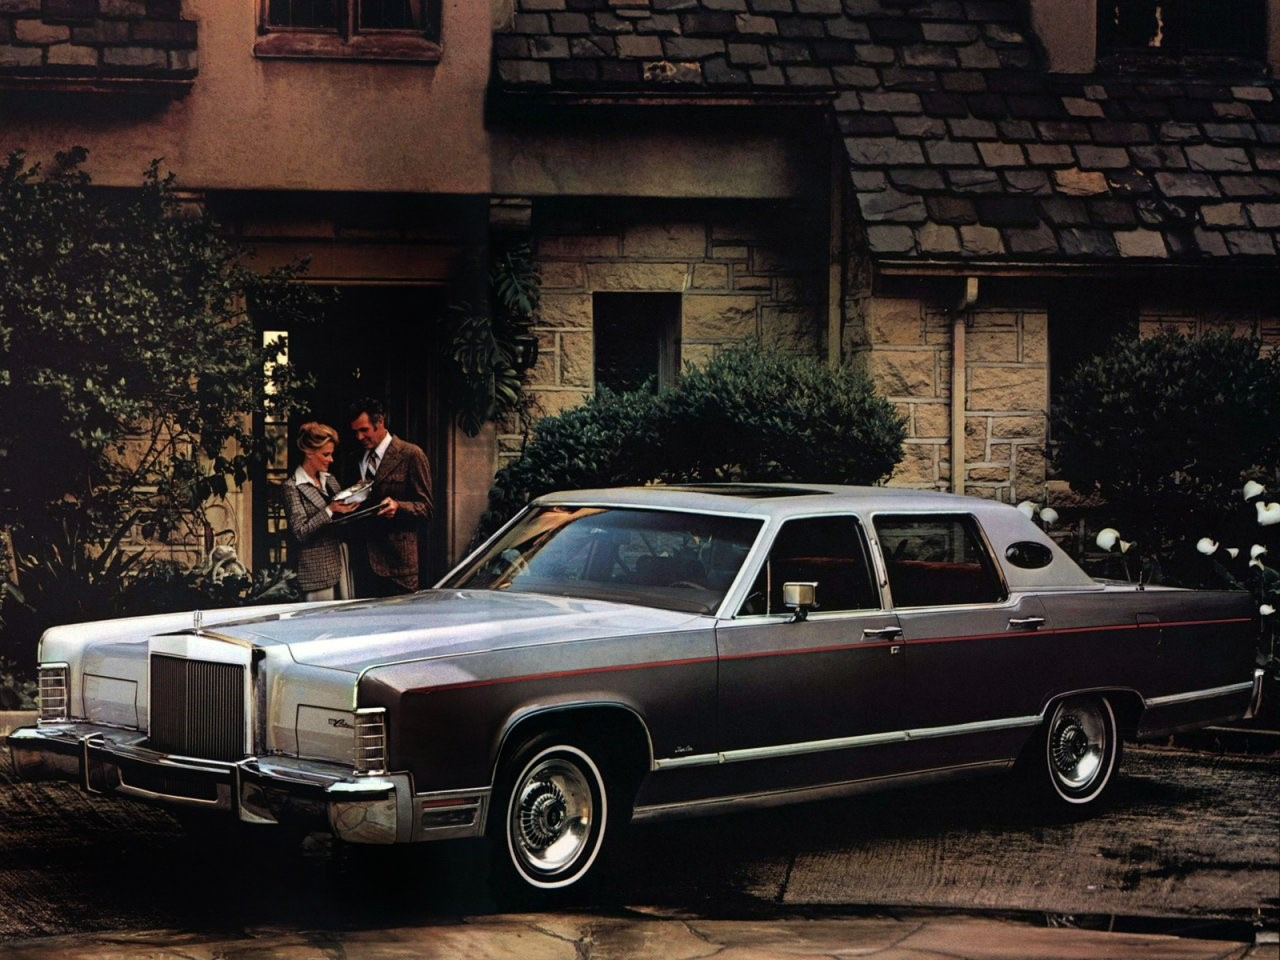 1979 Lincoln Continental Williamsburg Town Car